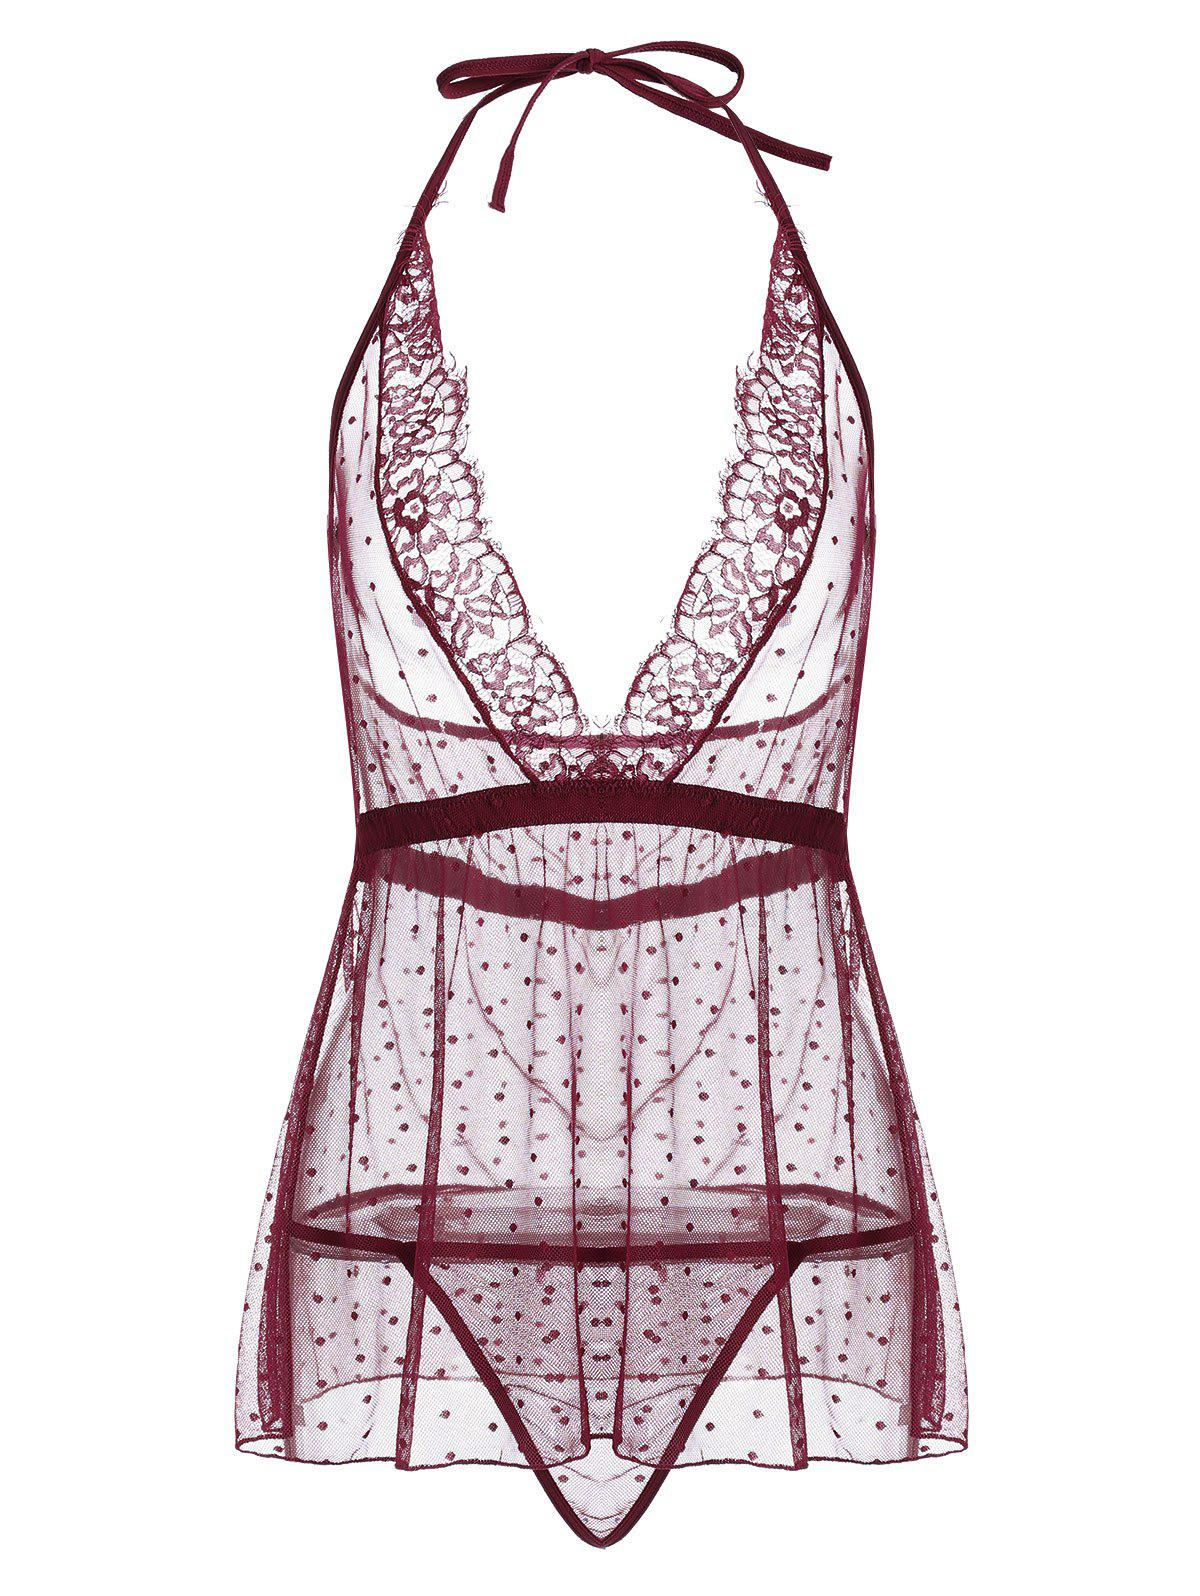 Lace Trim Mesh Sheer Babydoll - Rouge vineux M